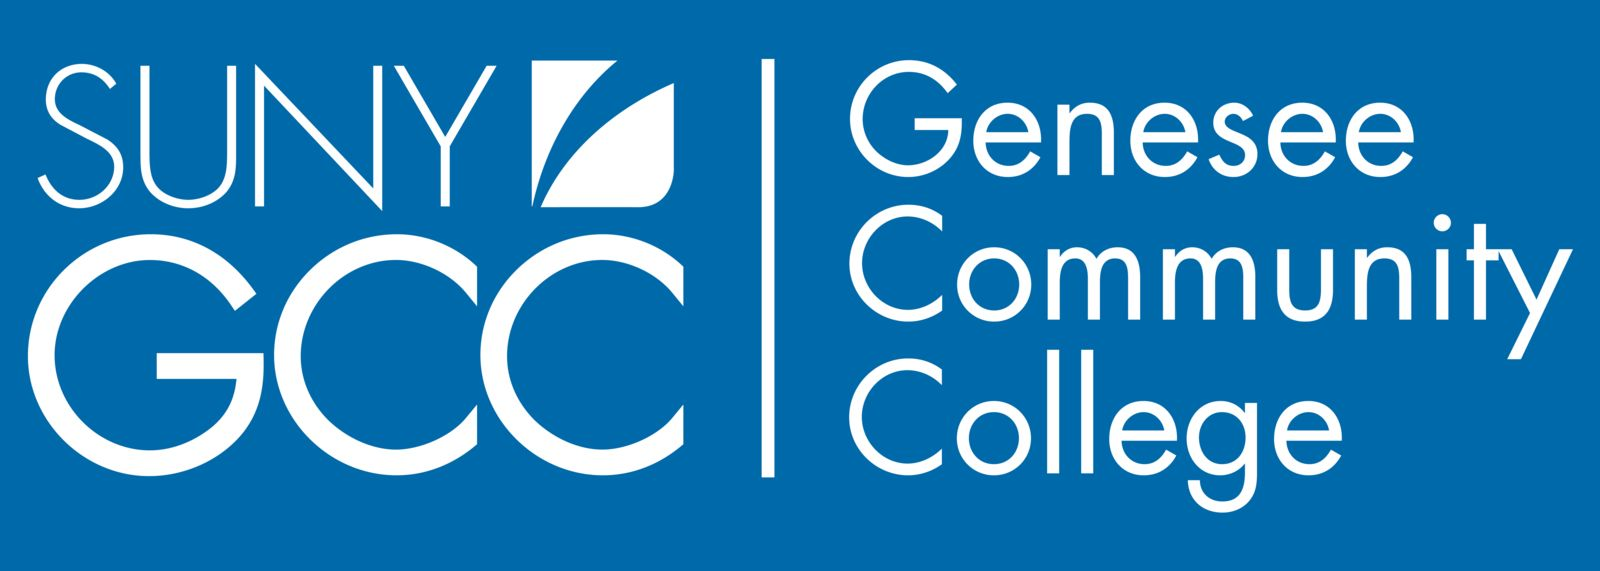 Genesee Community College Logo - Blue Banner (GCC)